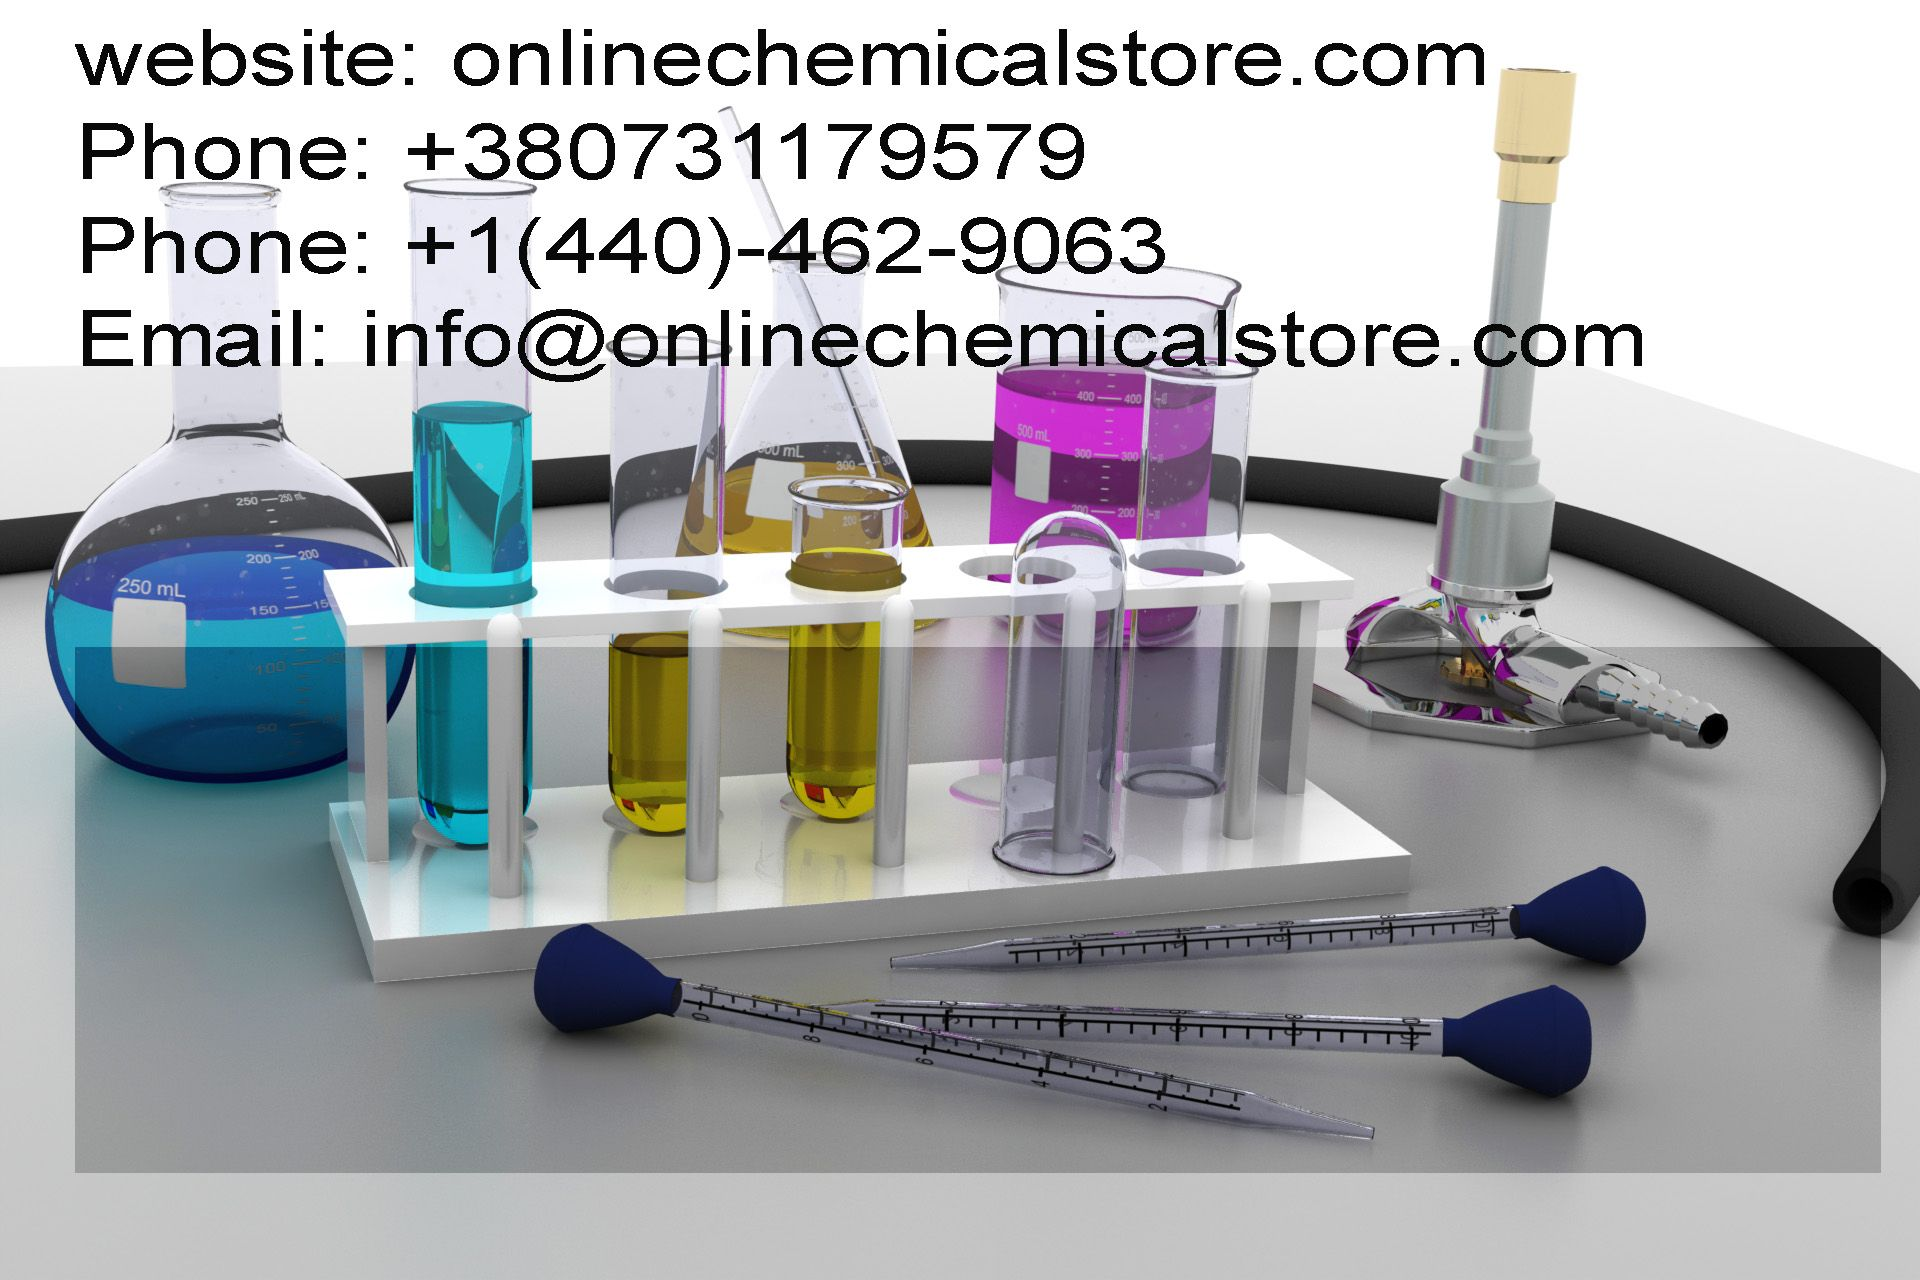 onlinechemicalstore (seo2637) on Pinterest